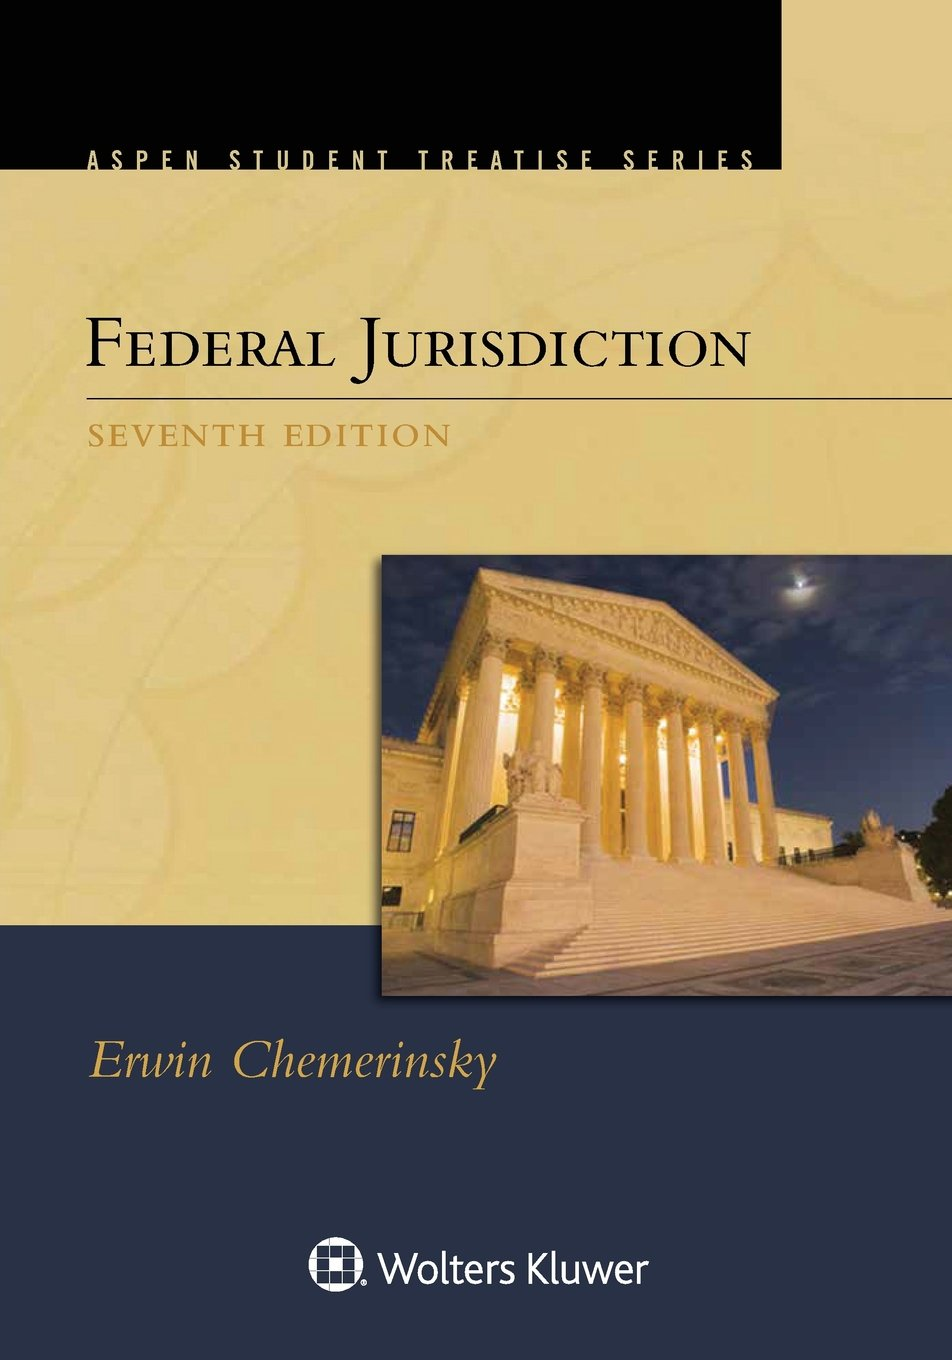 Federal Jurisdiction (Aspen Student Treatise) (Aspen Treatise) by Wolters Kluwer